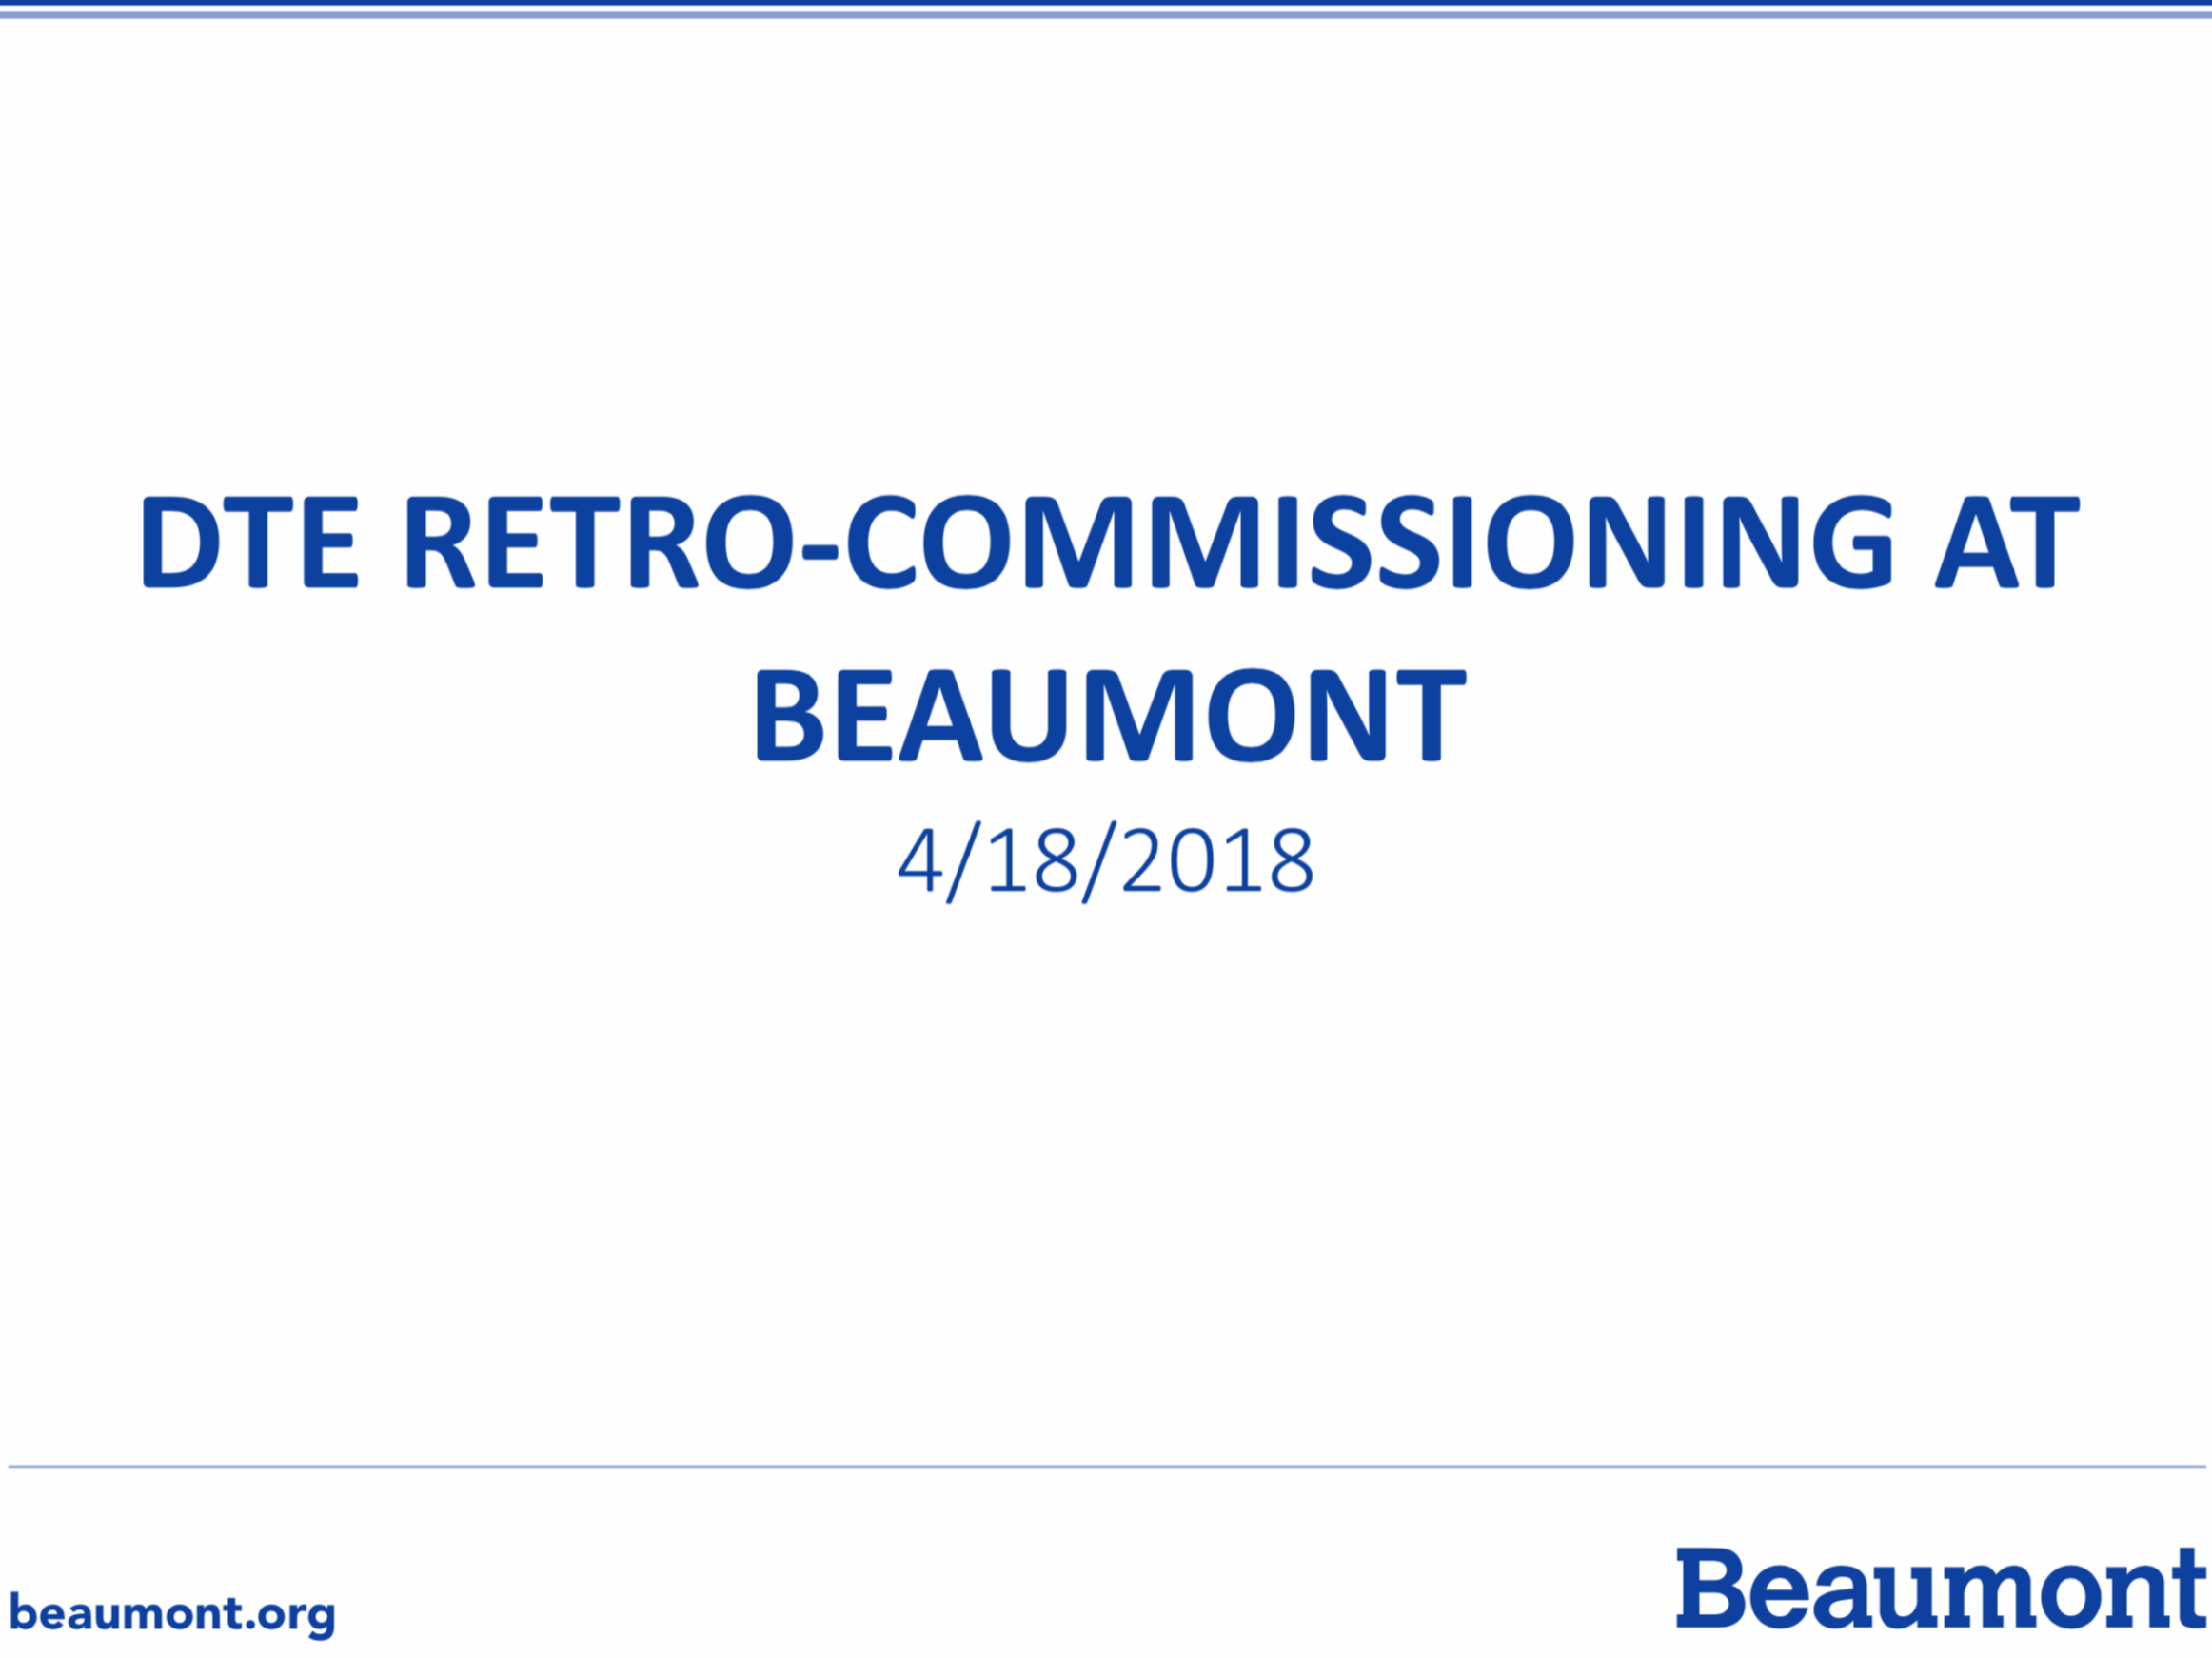 DTE Retro-Commissioning at Beaumont